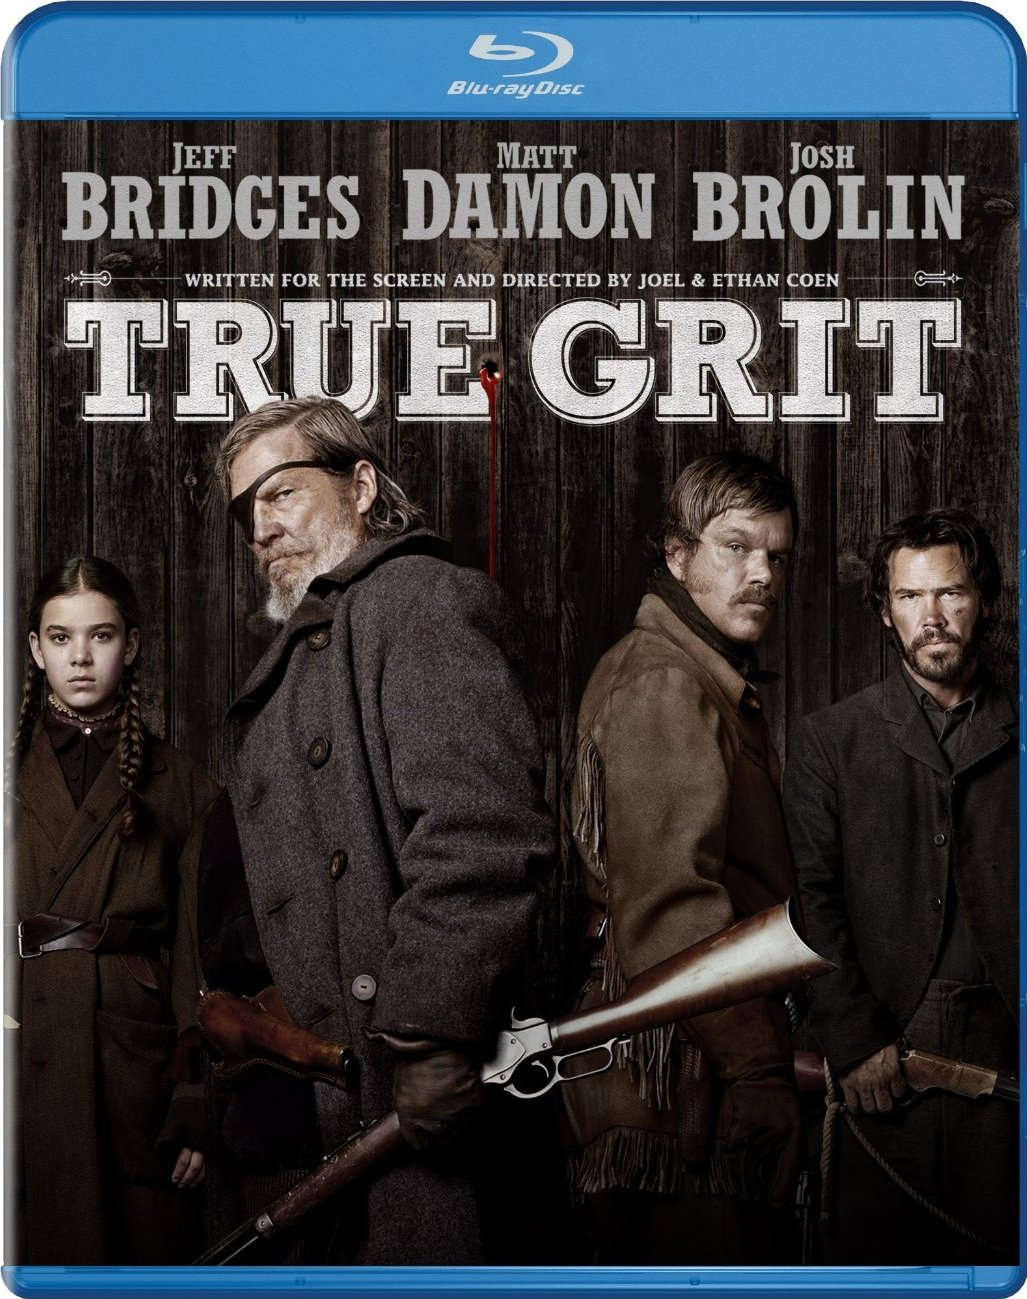 True Grit (2010) 720p BluRay x264 [Dual-Audio][English DD 5.1 + Hindi DD 2.0] – Mafiaking – M2Tv 1.1Gb